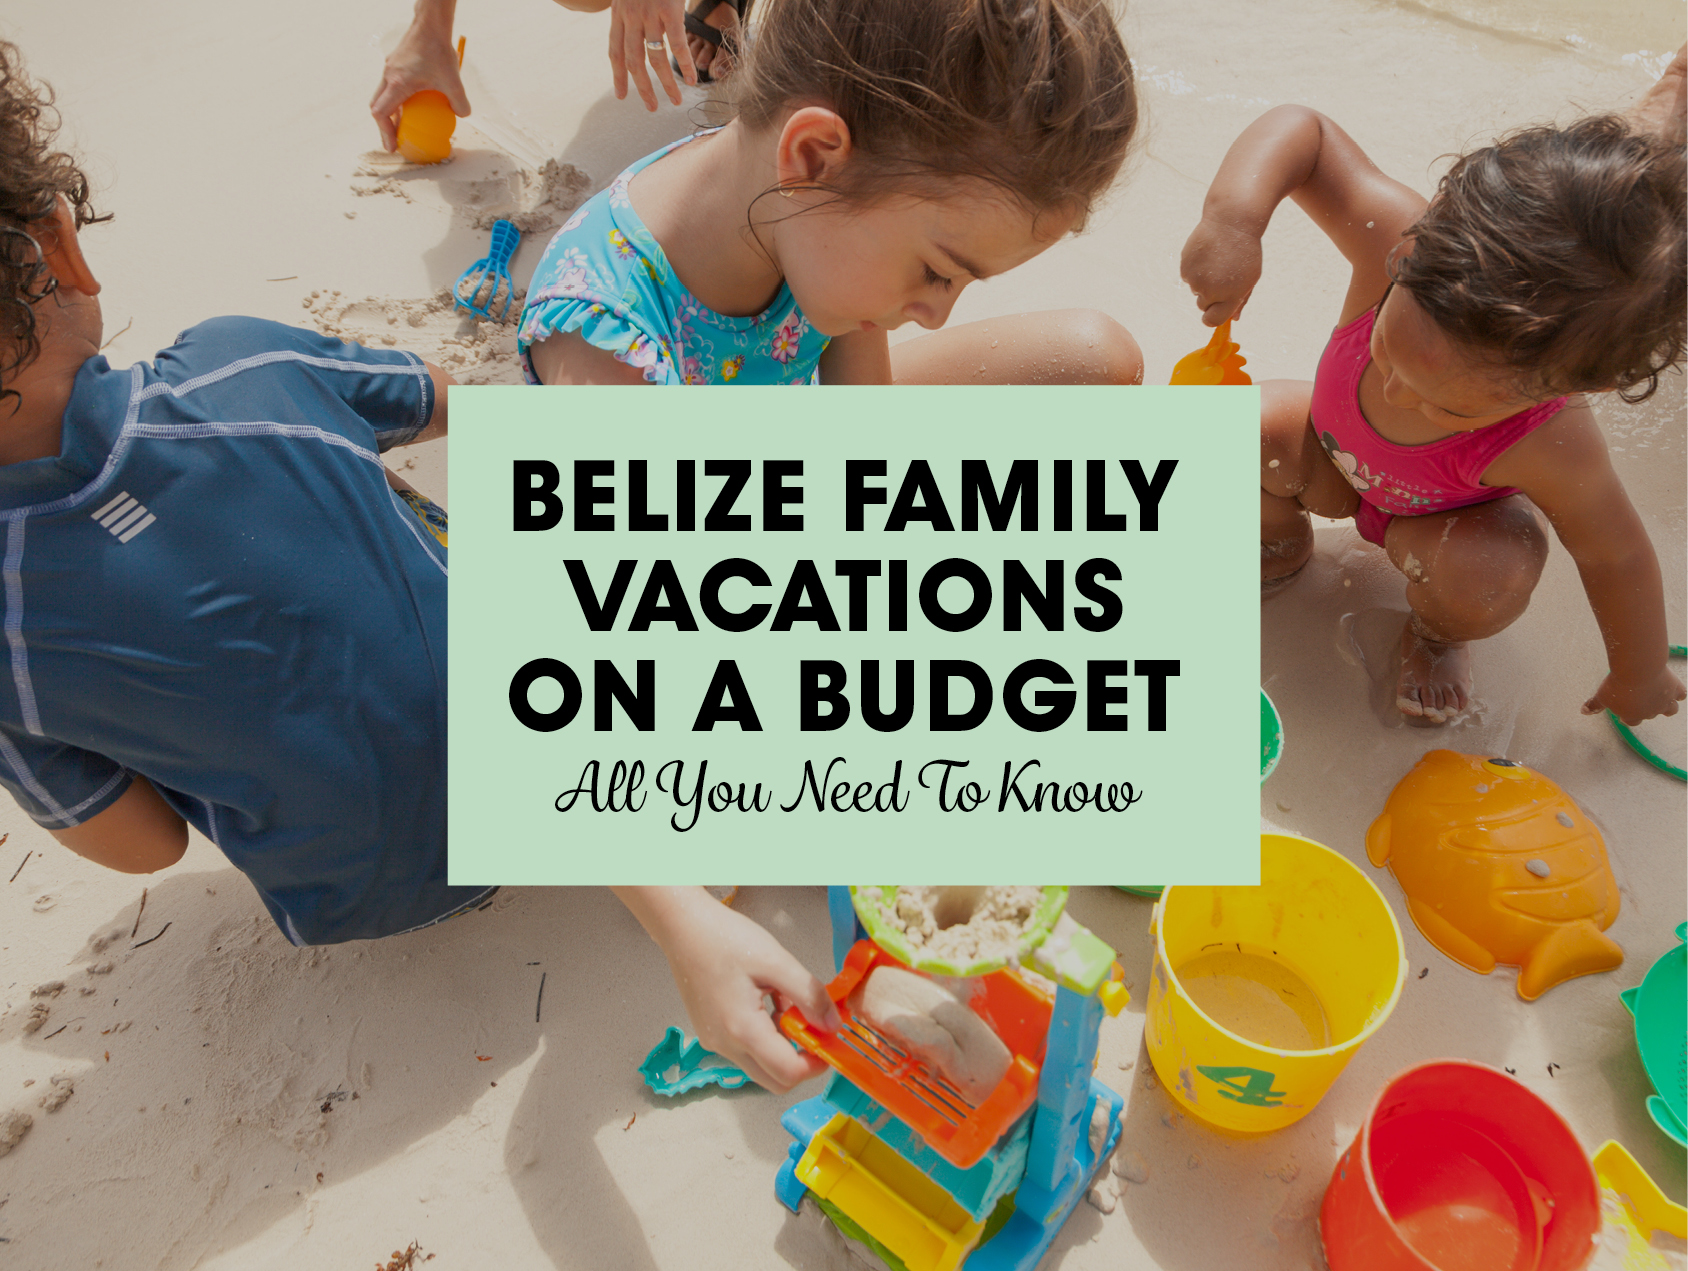 Belize Family Vacations